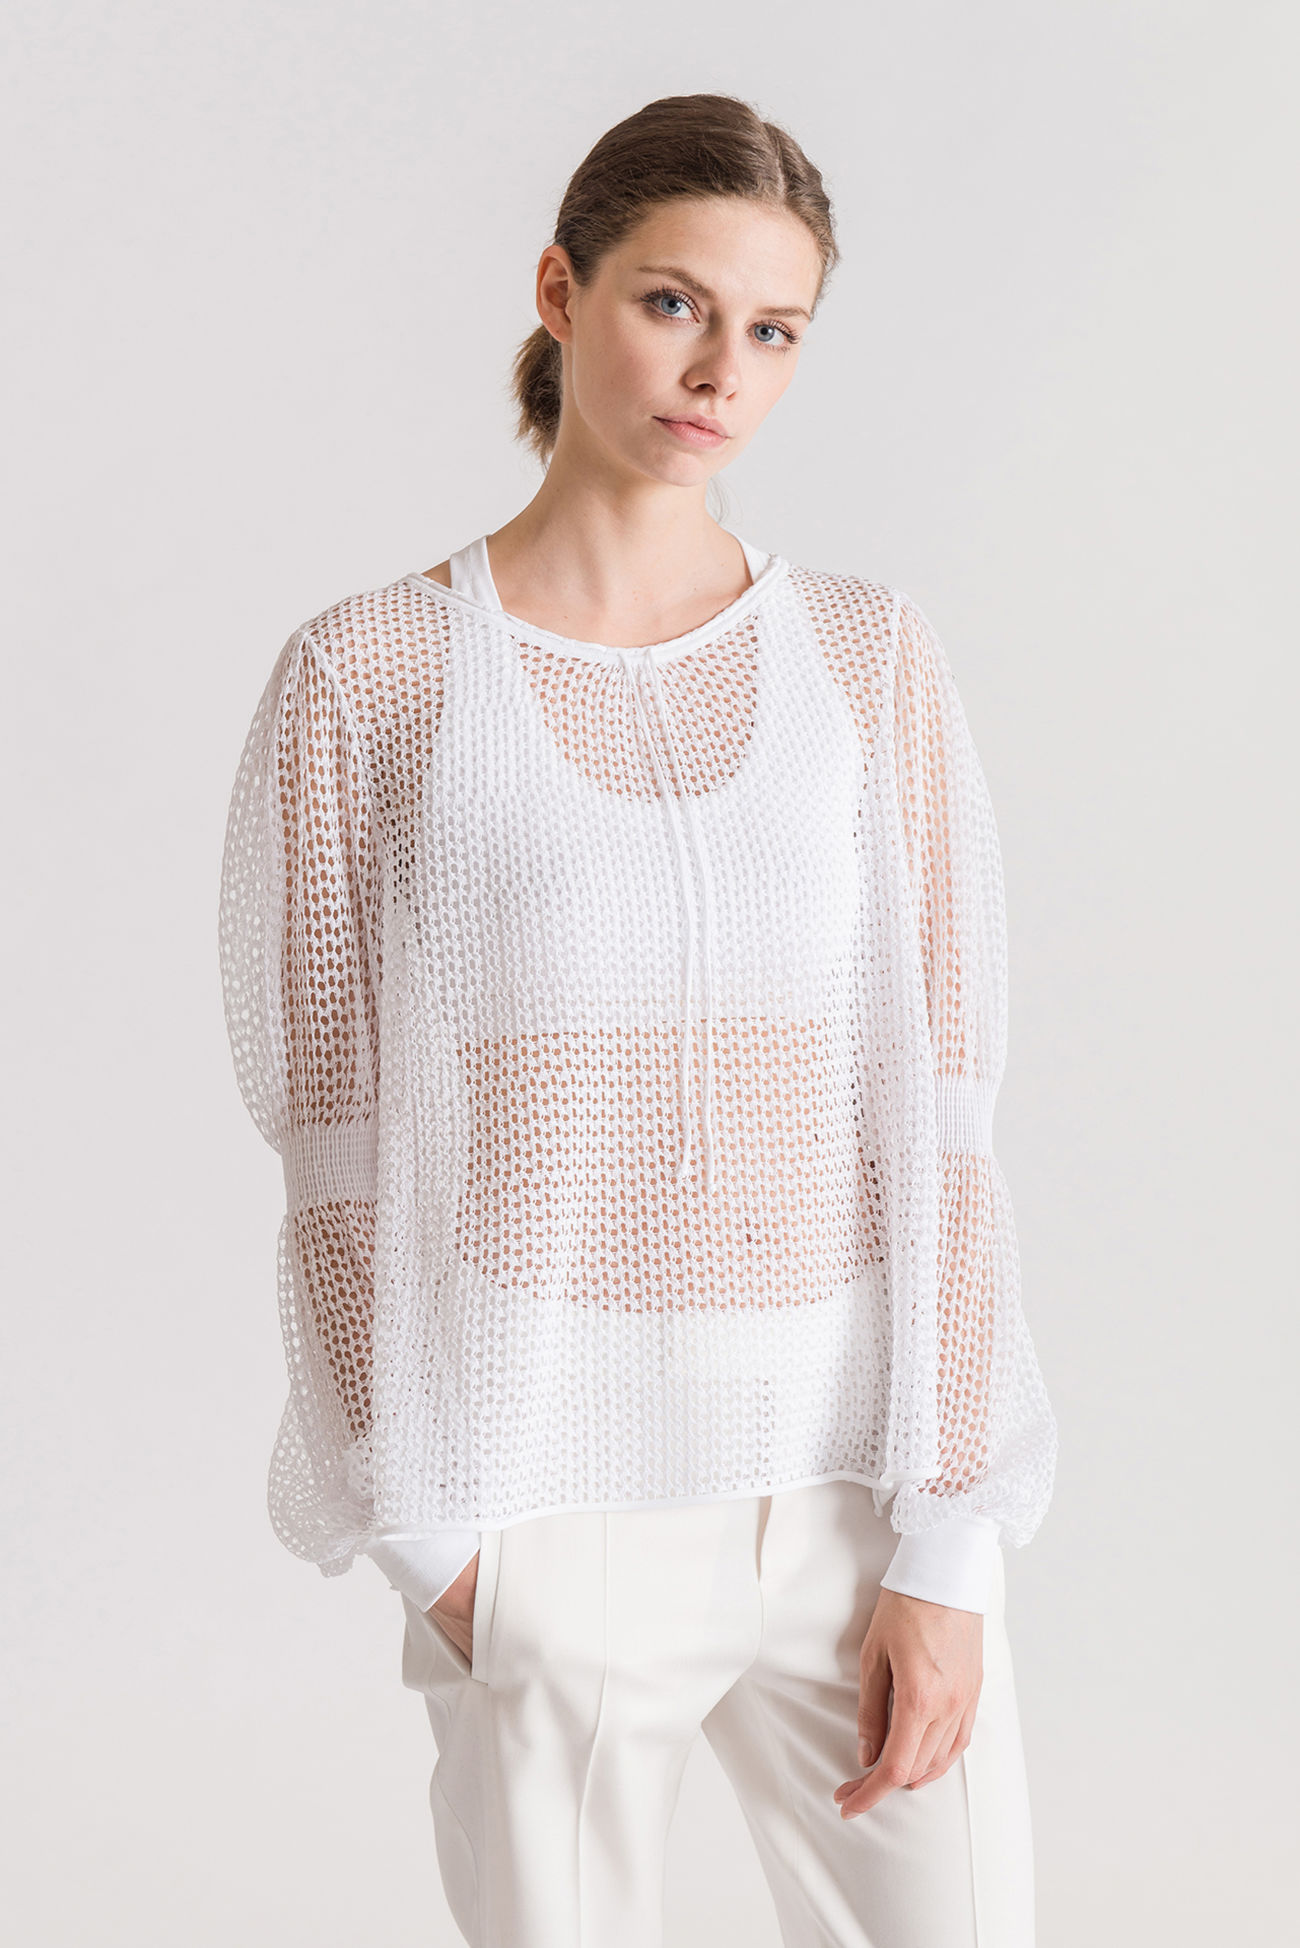 Feminine jumper with a hole pattern